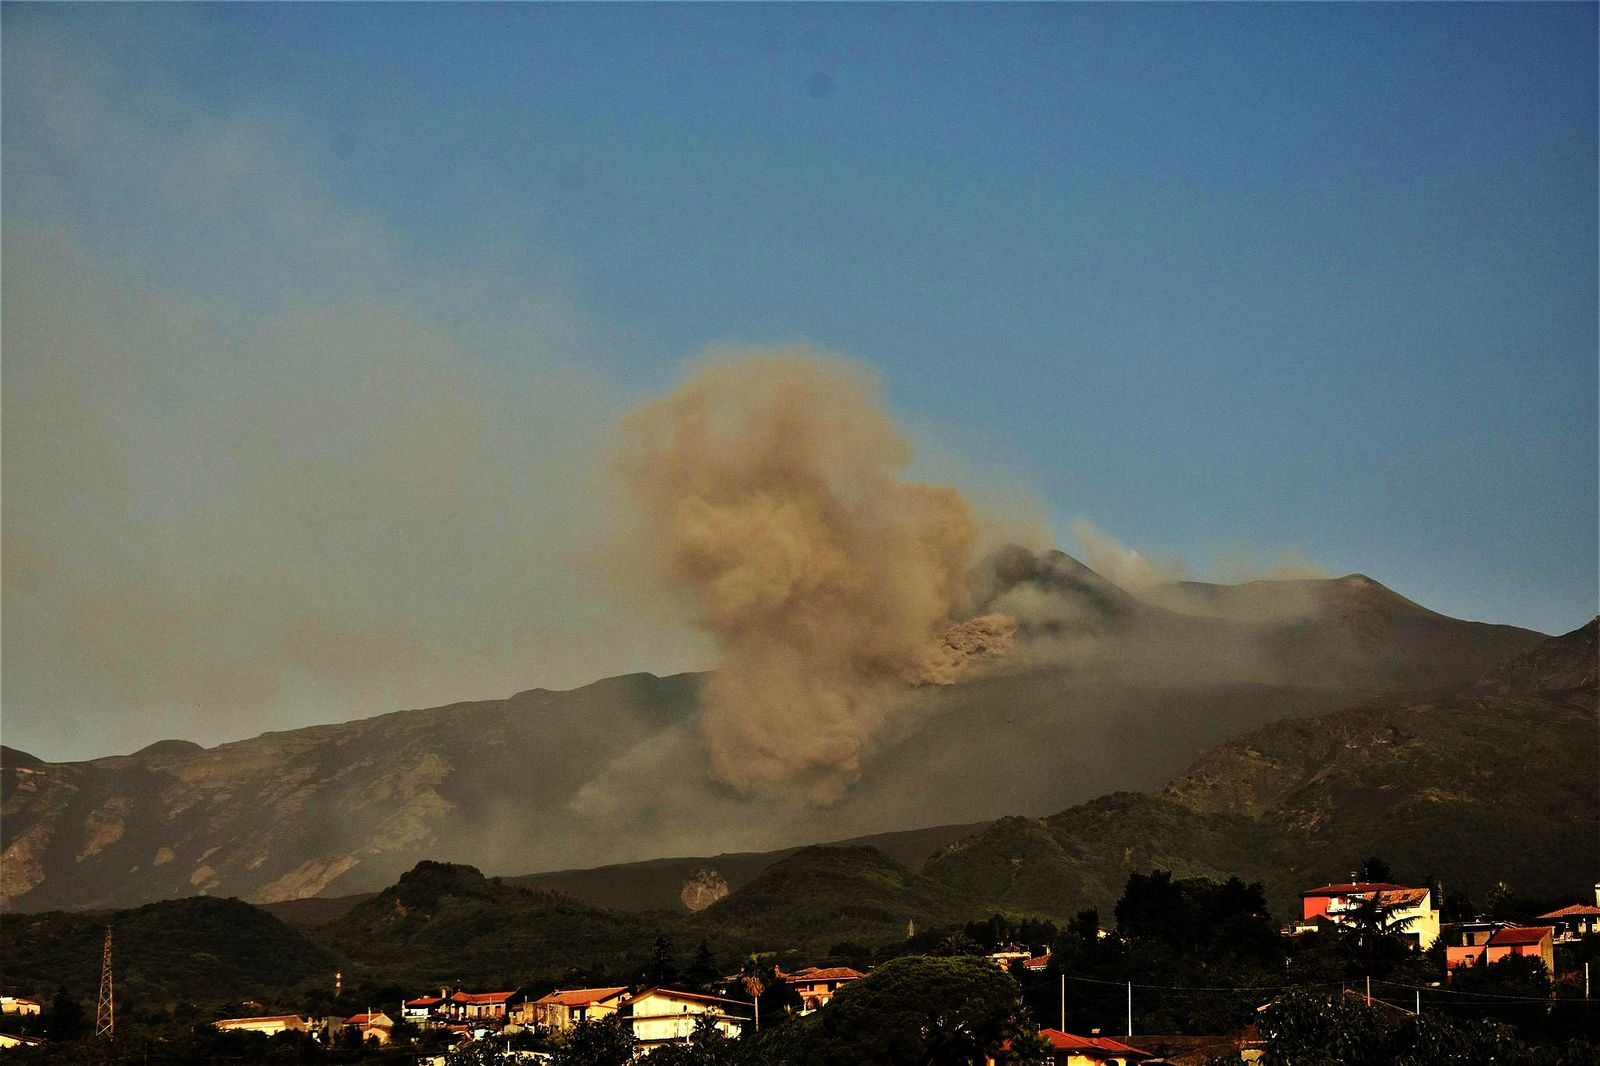 Etna - 08/09/2021 07:41 loc.- opening of a new mouth at the base of the SE crater and emission towards the Valle del bove - photo courtesy of © Pippo Scarpinati